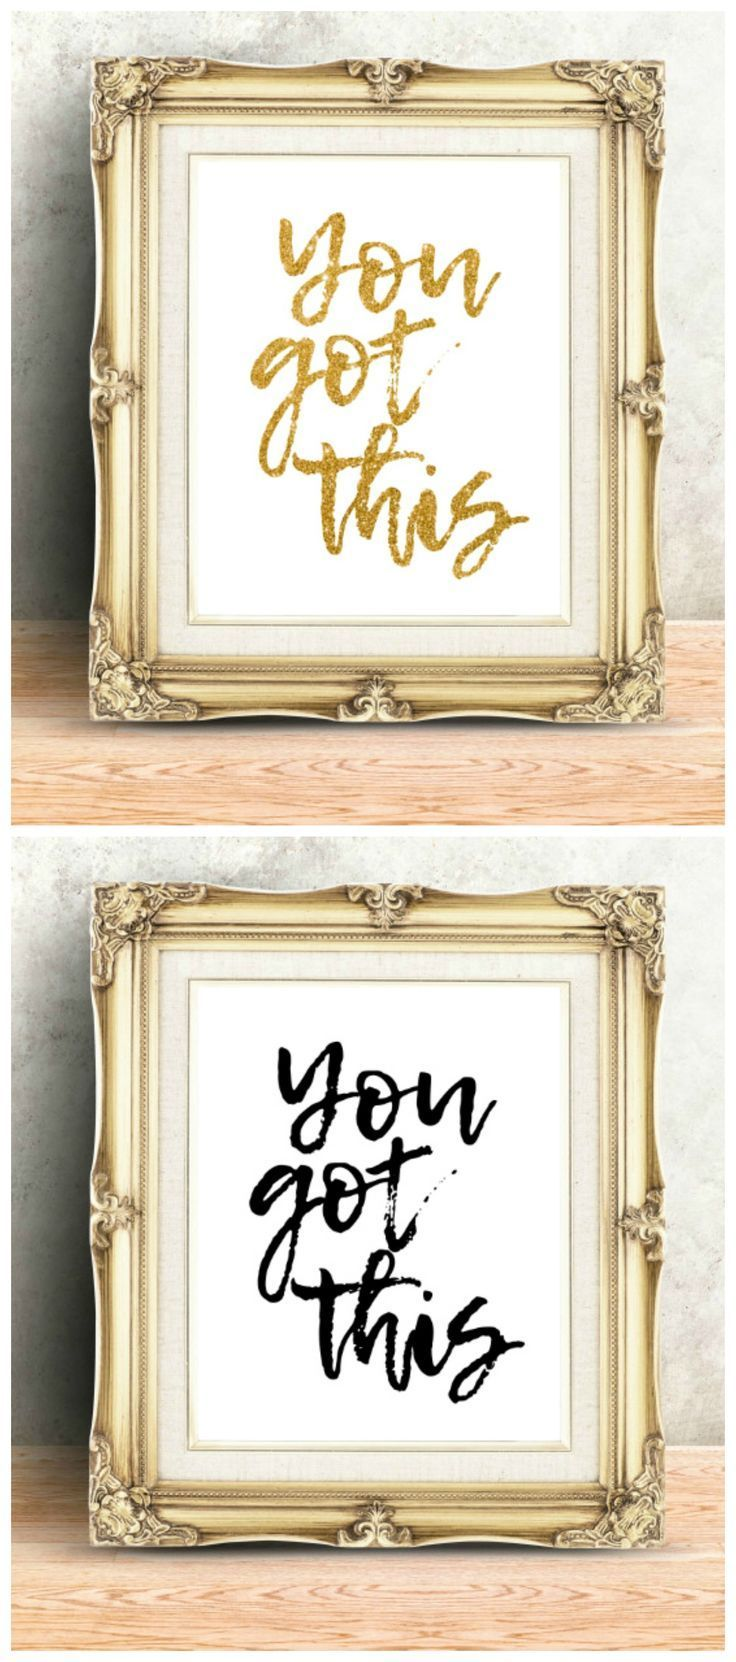 You Got This! These are such gorgeous printables! I really love the gold sparkly one! It would look perfect in my bedroom as an awesome motivational quote every morning! Or I could put it in a gallery wall in my dorm! #inspirationalquote #motivationalquotes #yougotthis #homedecorideas #dorm #quote #apartmentdecor #homedecor #gallerywall #gallerywallideas